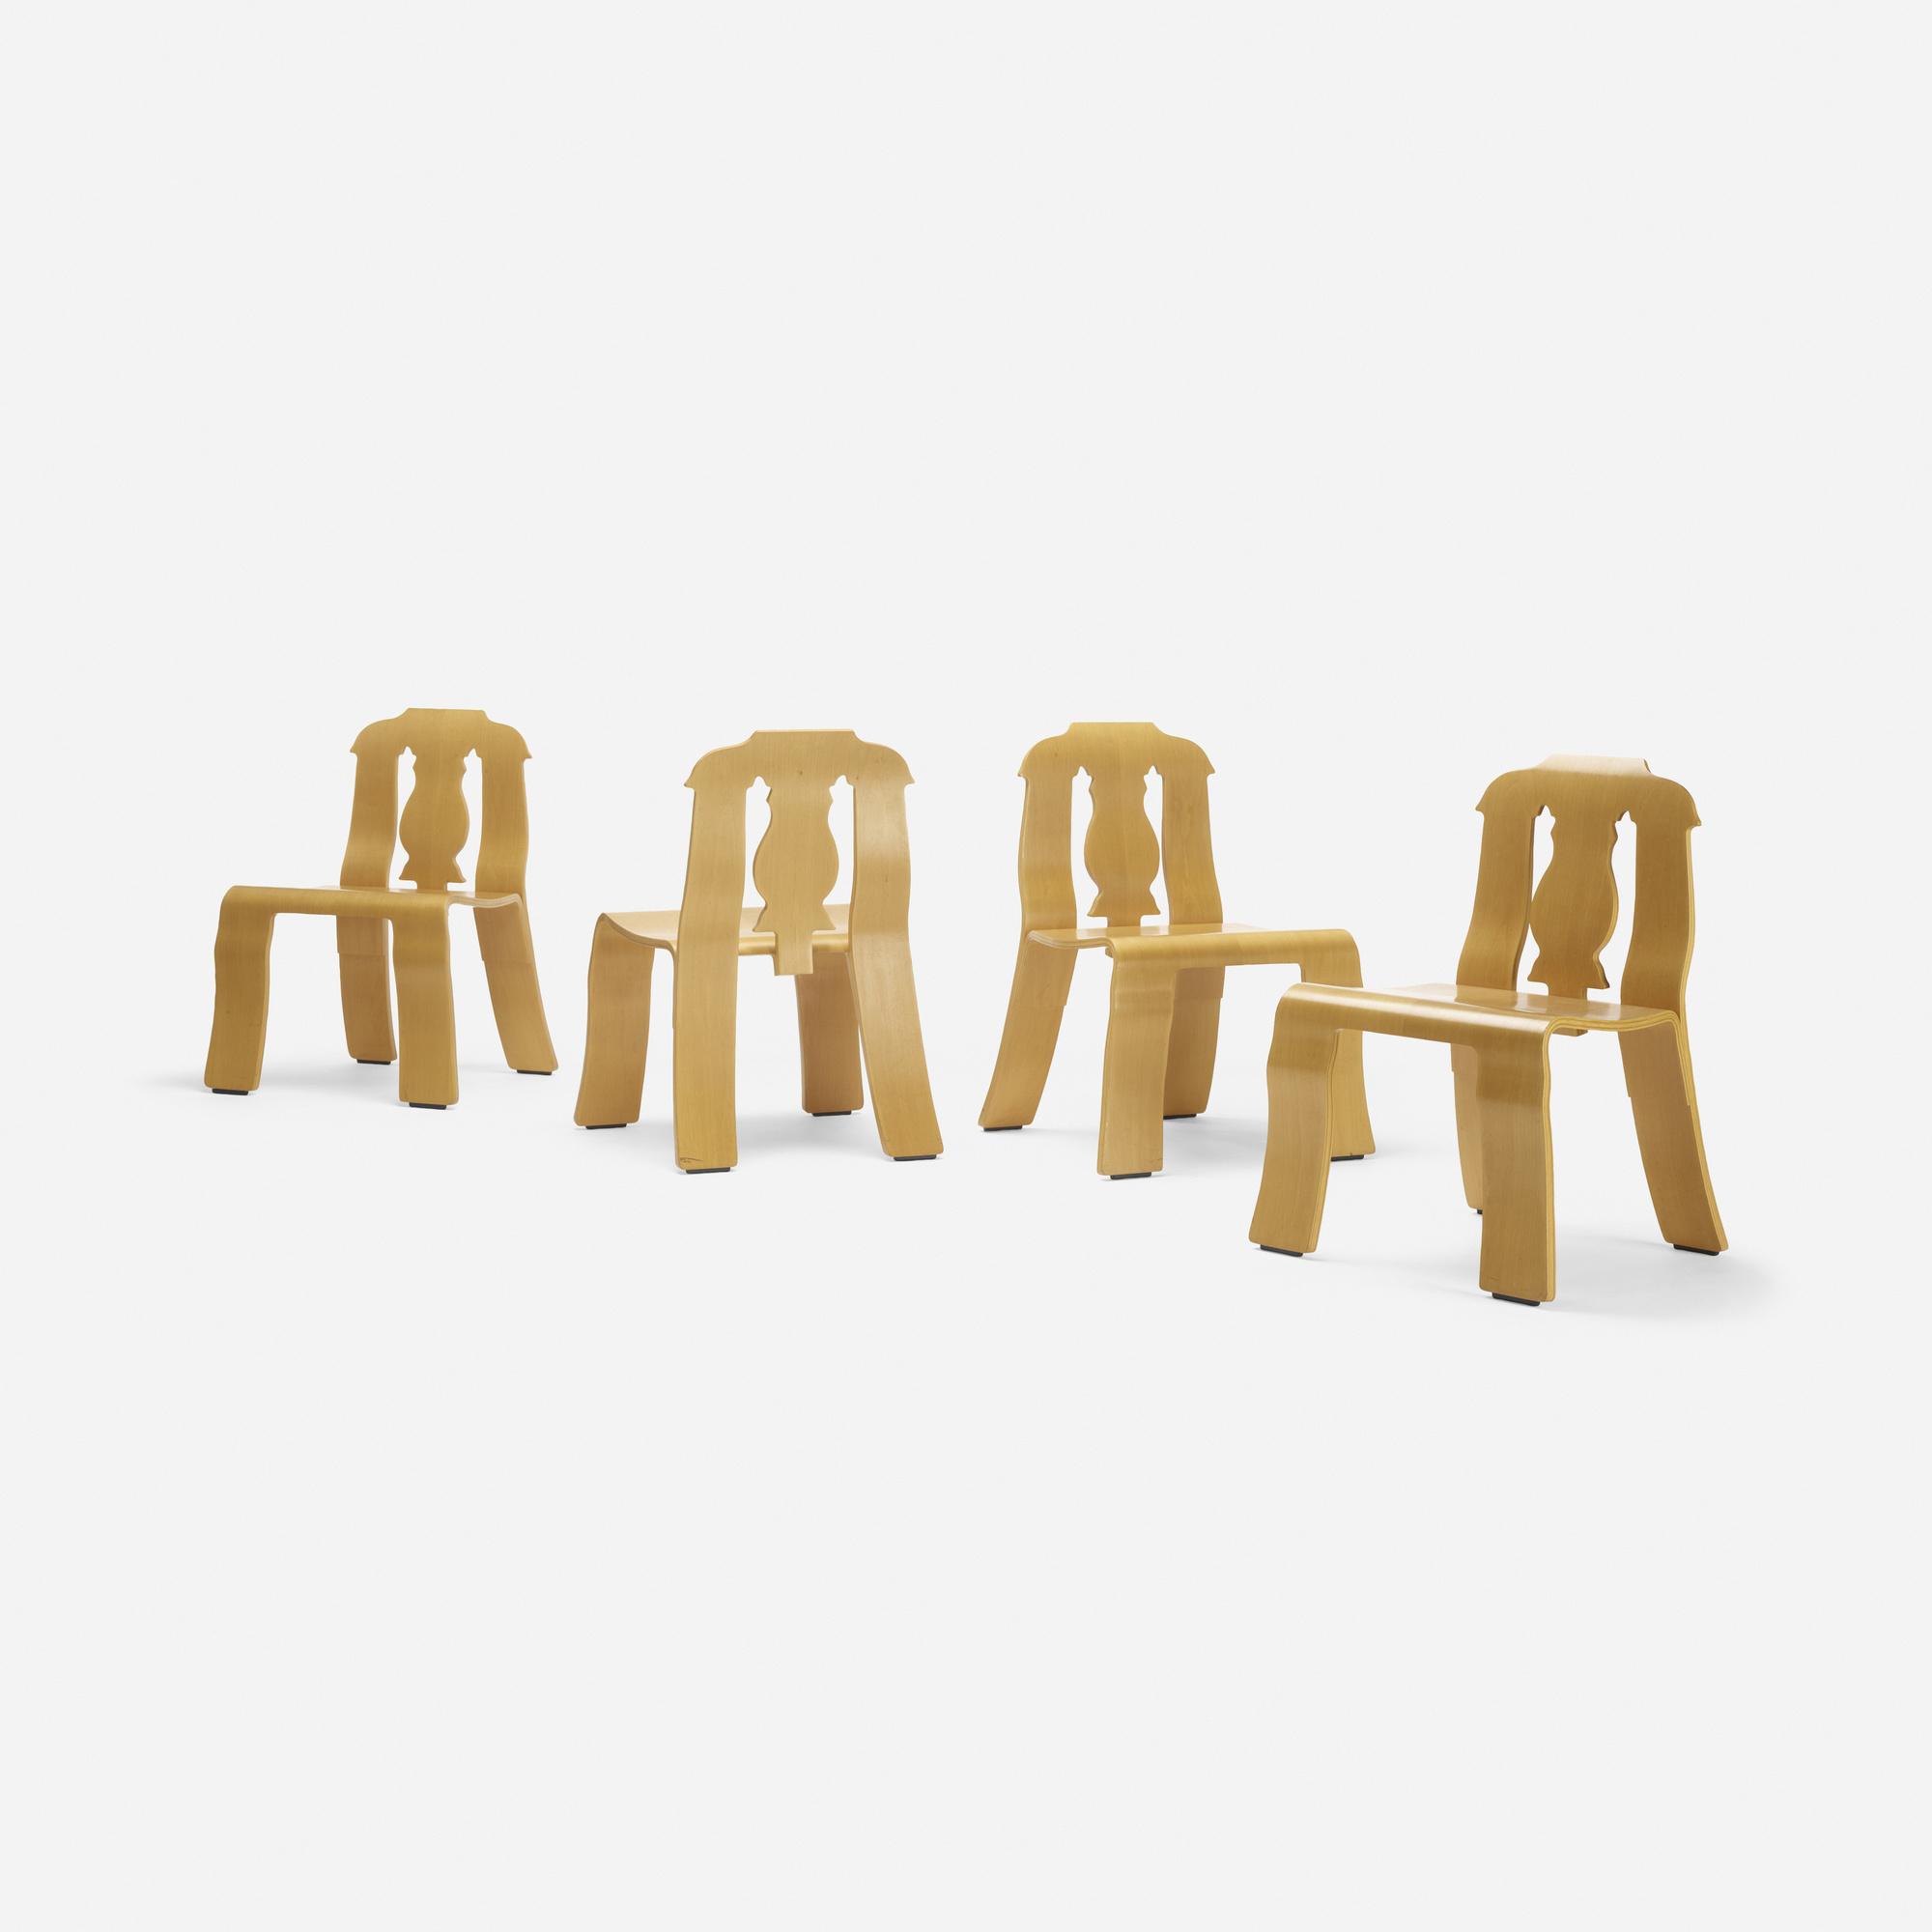 213: Robert Venturi with Denise Scott Brown / Empire chairs, set of four (2 of 3)